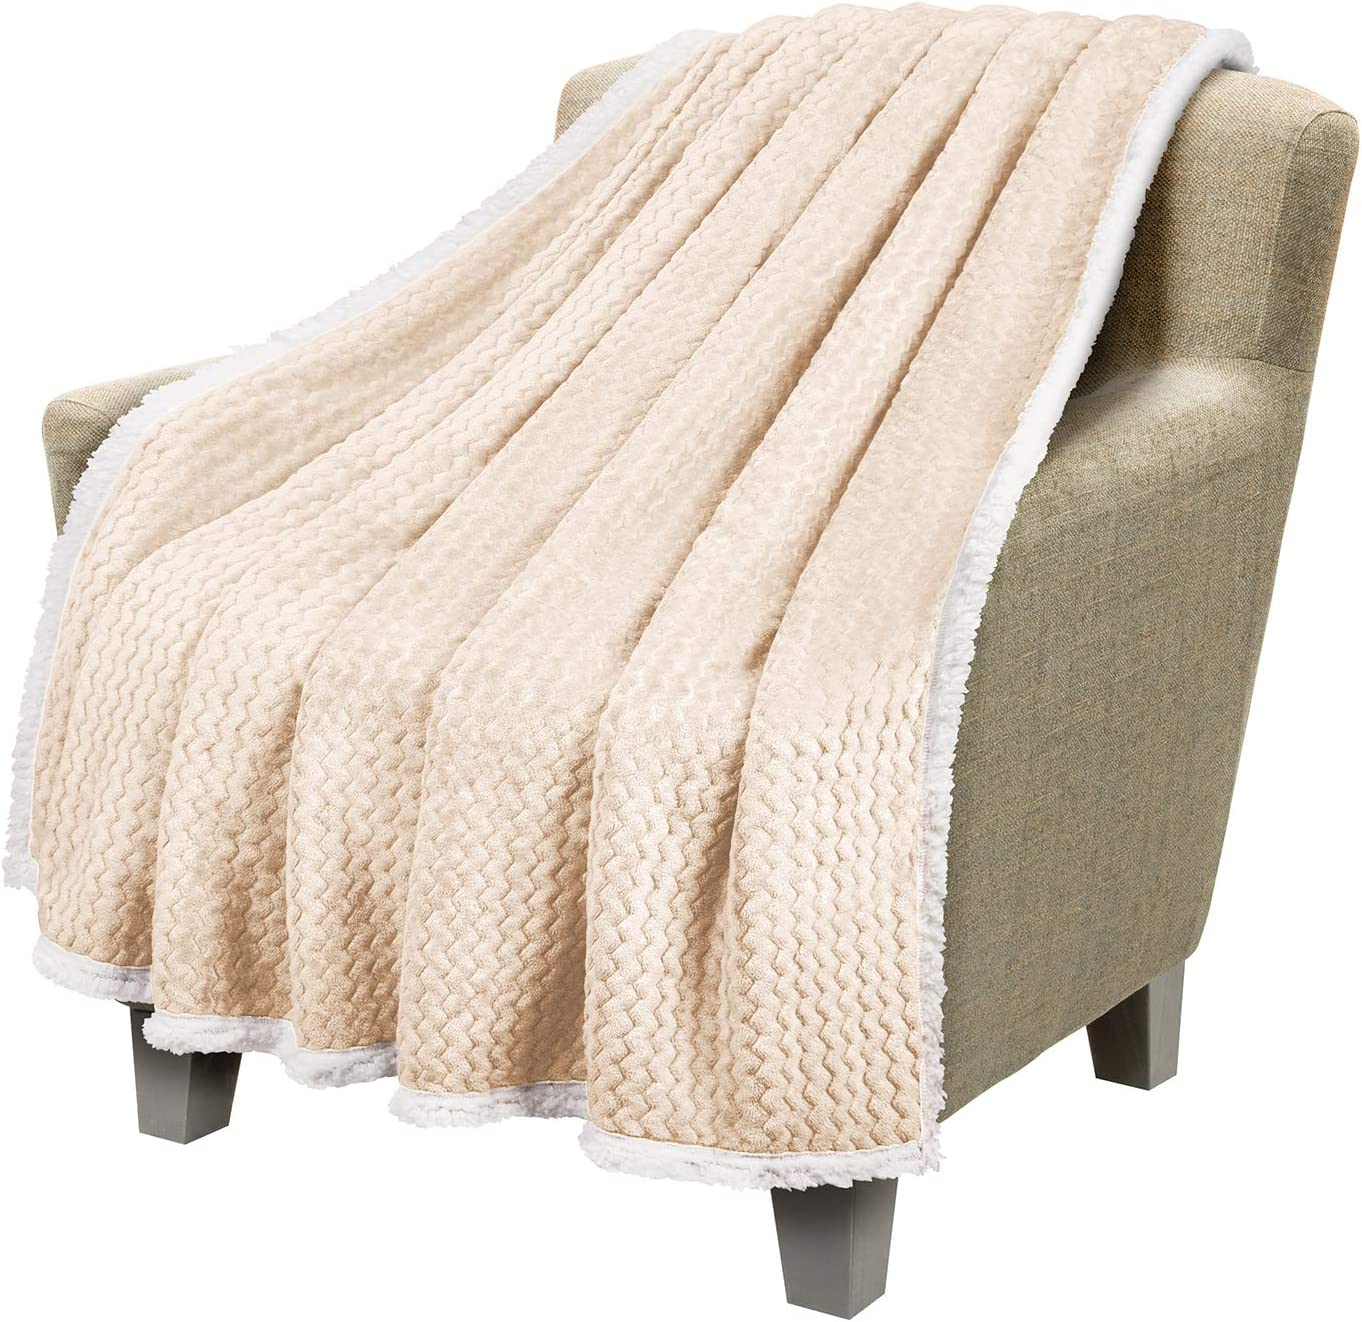 """Catalonia Sherpa Throws Blanket, Super Soft Comfy Fluffy Fuzzy Fleece Plush Blanket for Sofa Couch Bed Reversible All Season for Adults Children 50""""x60"""" Chevron Latte"""